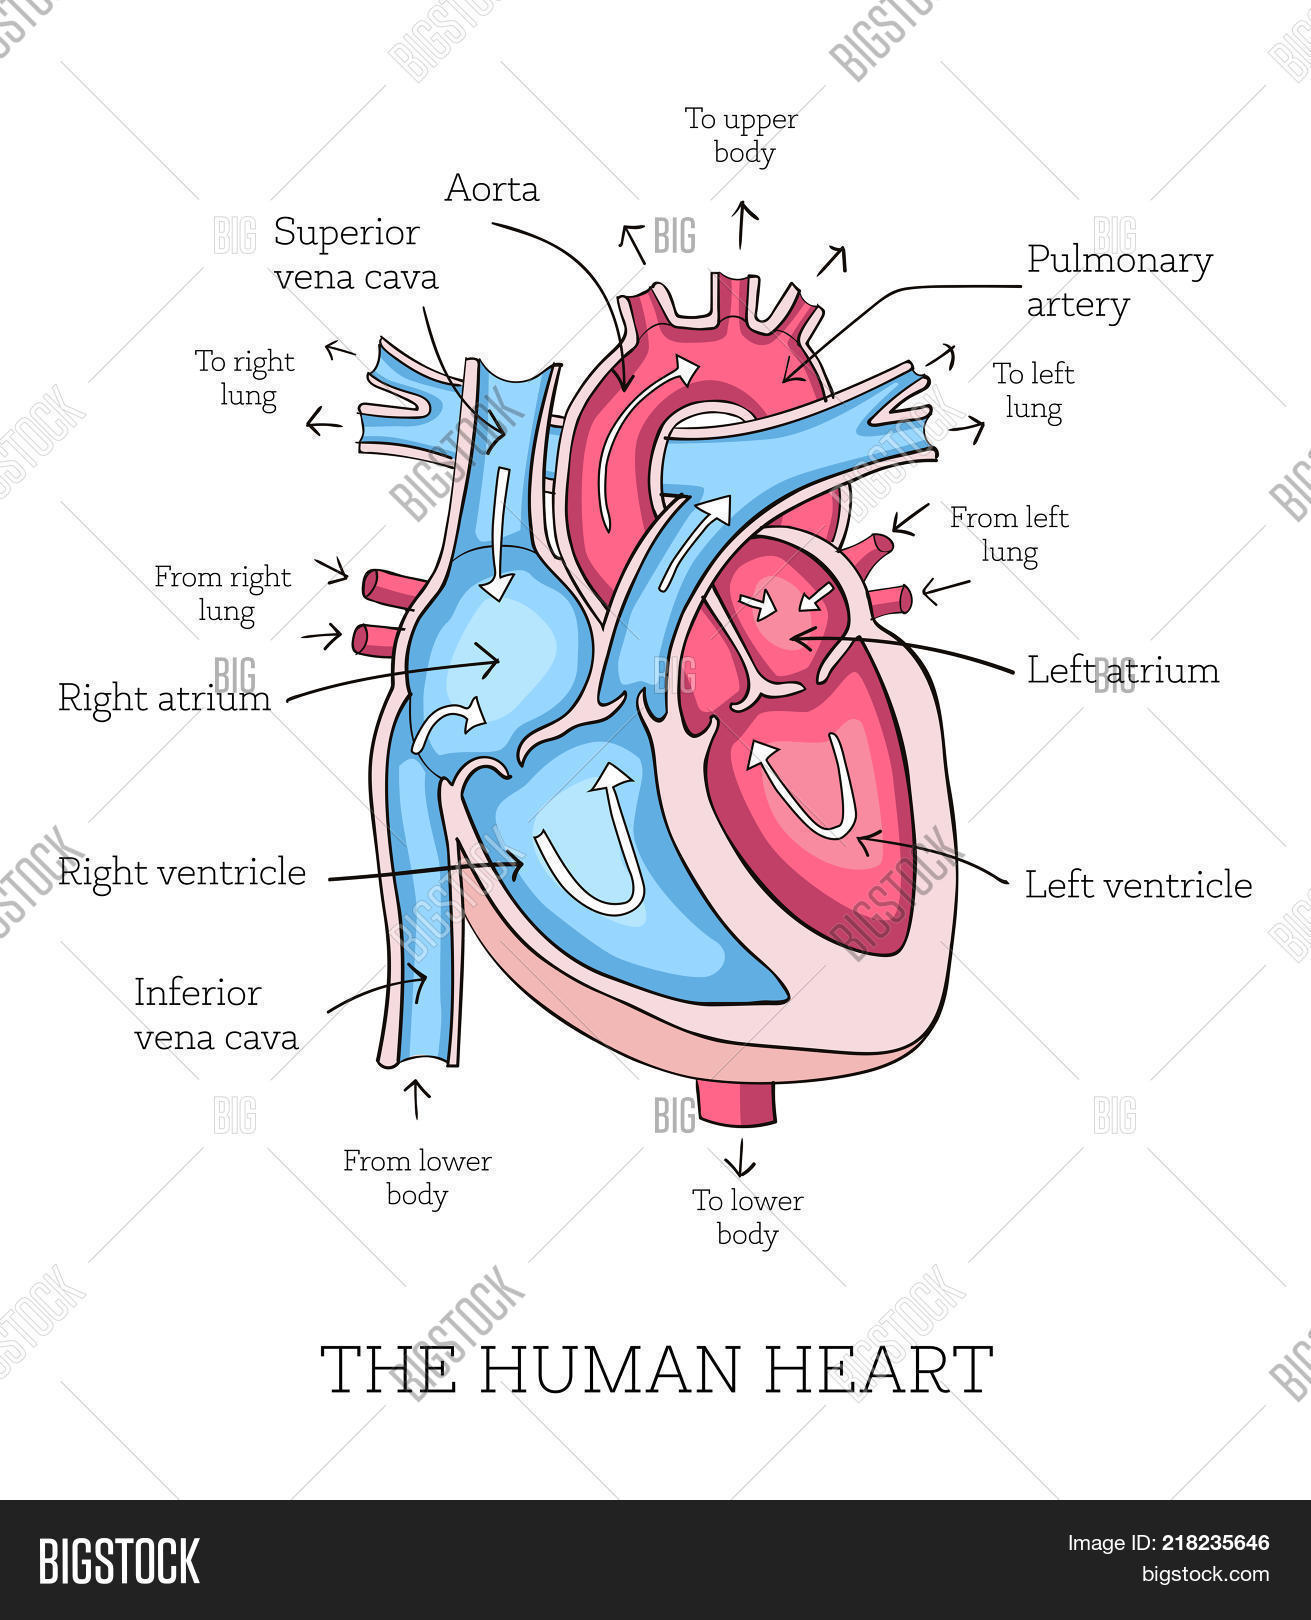 hight resolution of hand drawn illustration of human heart anatomy educational diagram showing blood flow with main parts